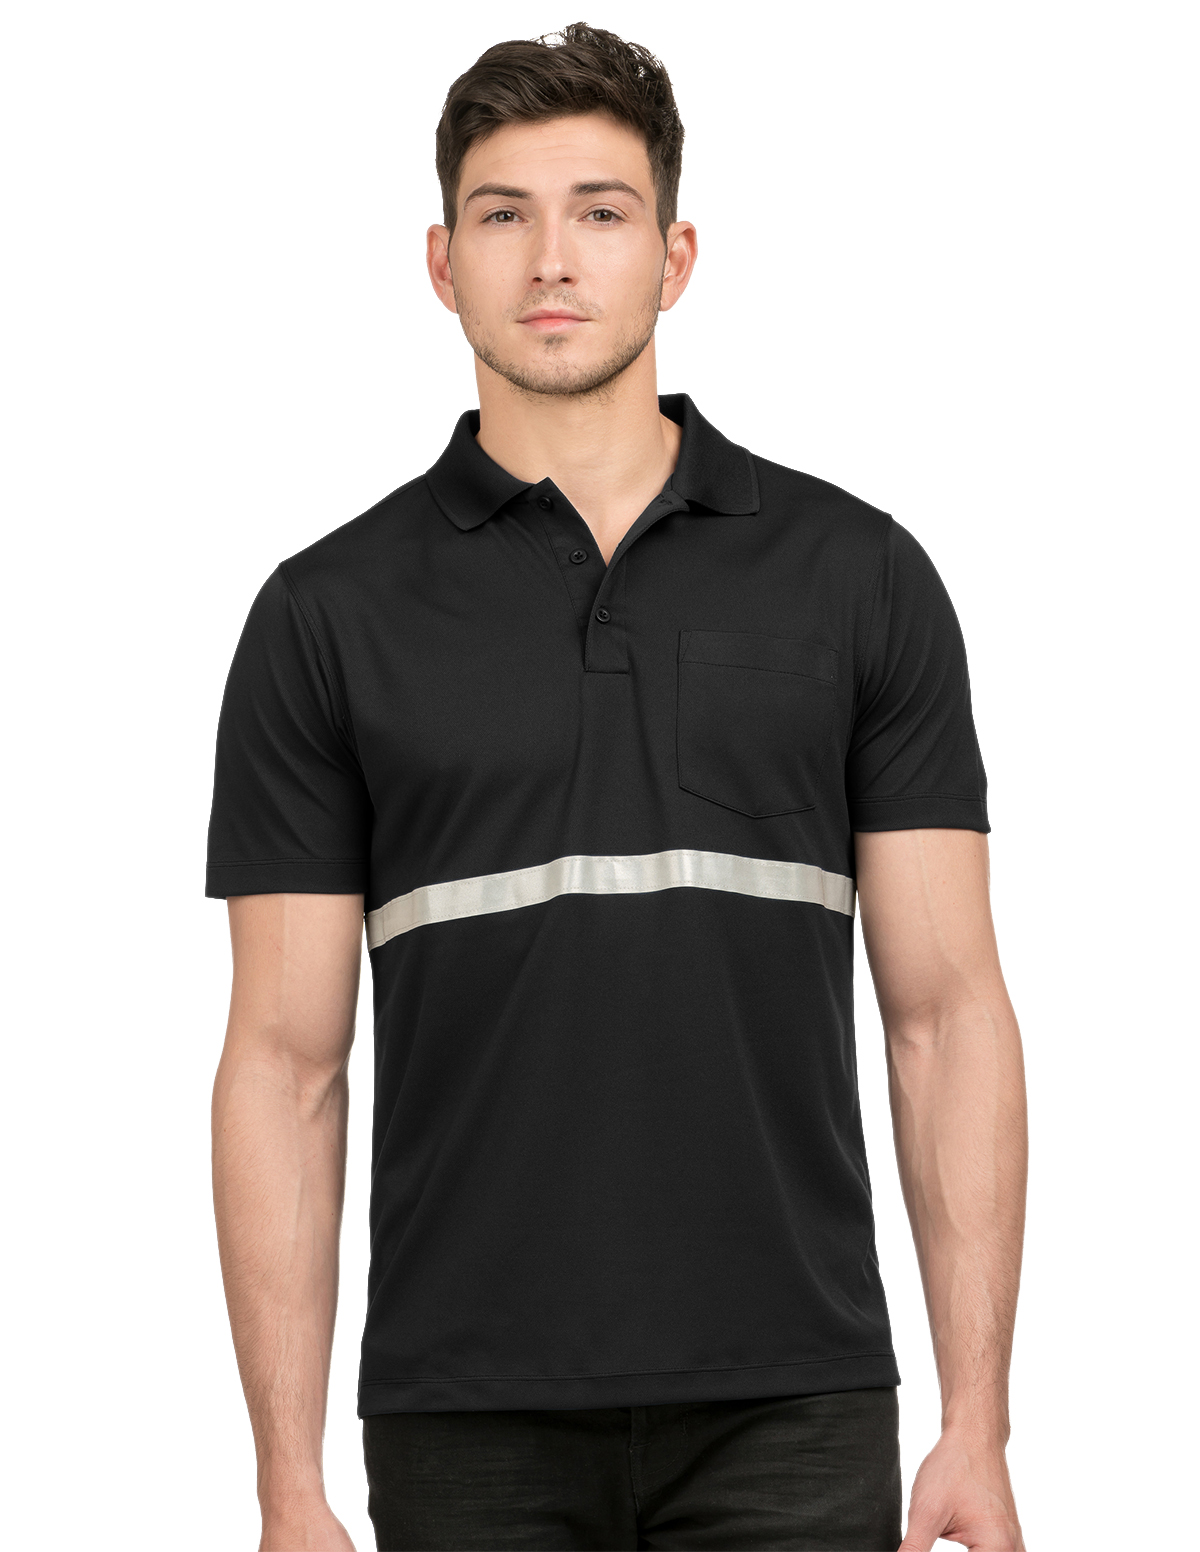 Tri-Mountain K035 - Civic Pocketed Polo with Reflective Tape